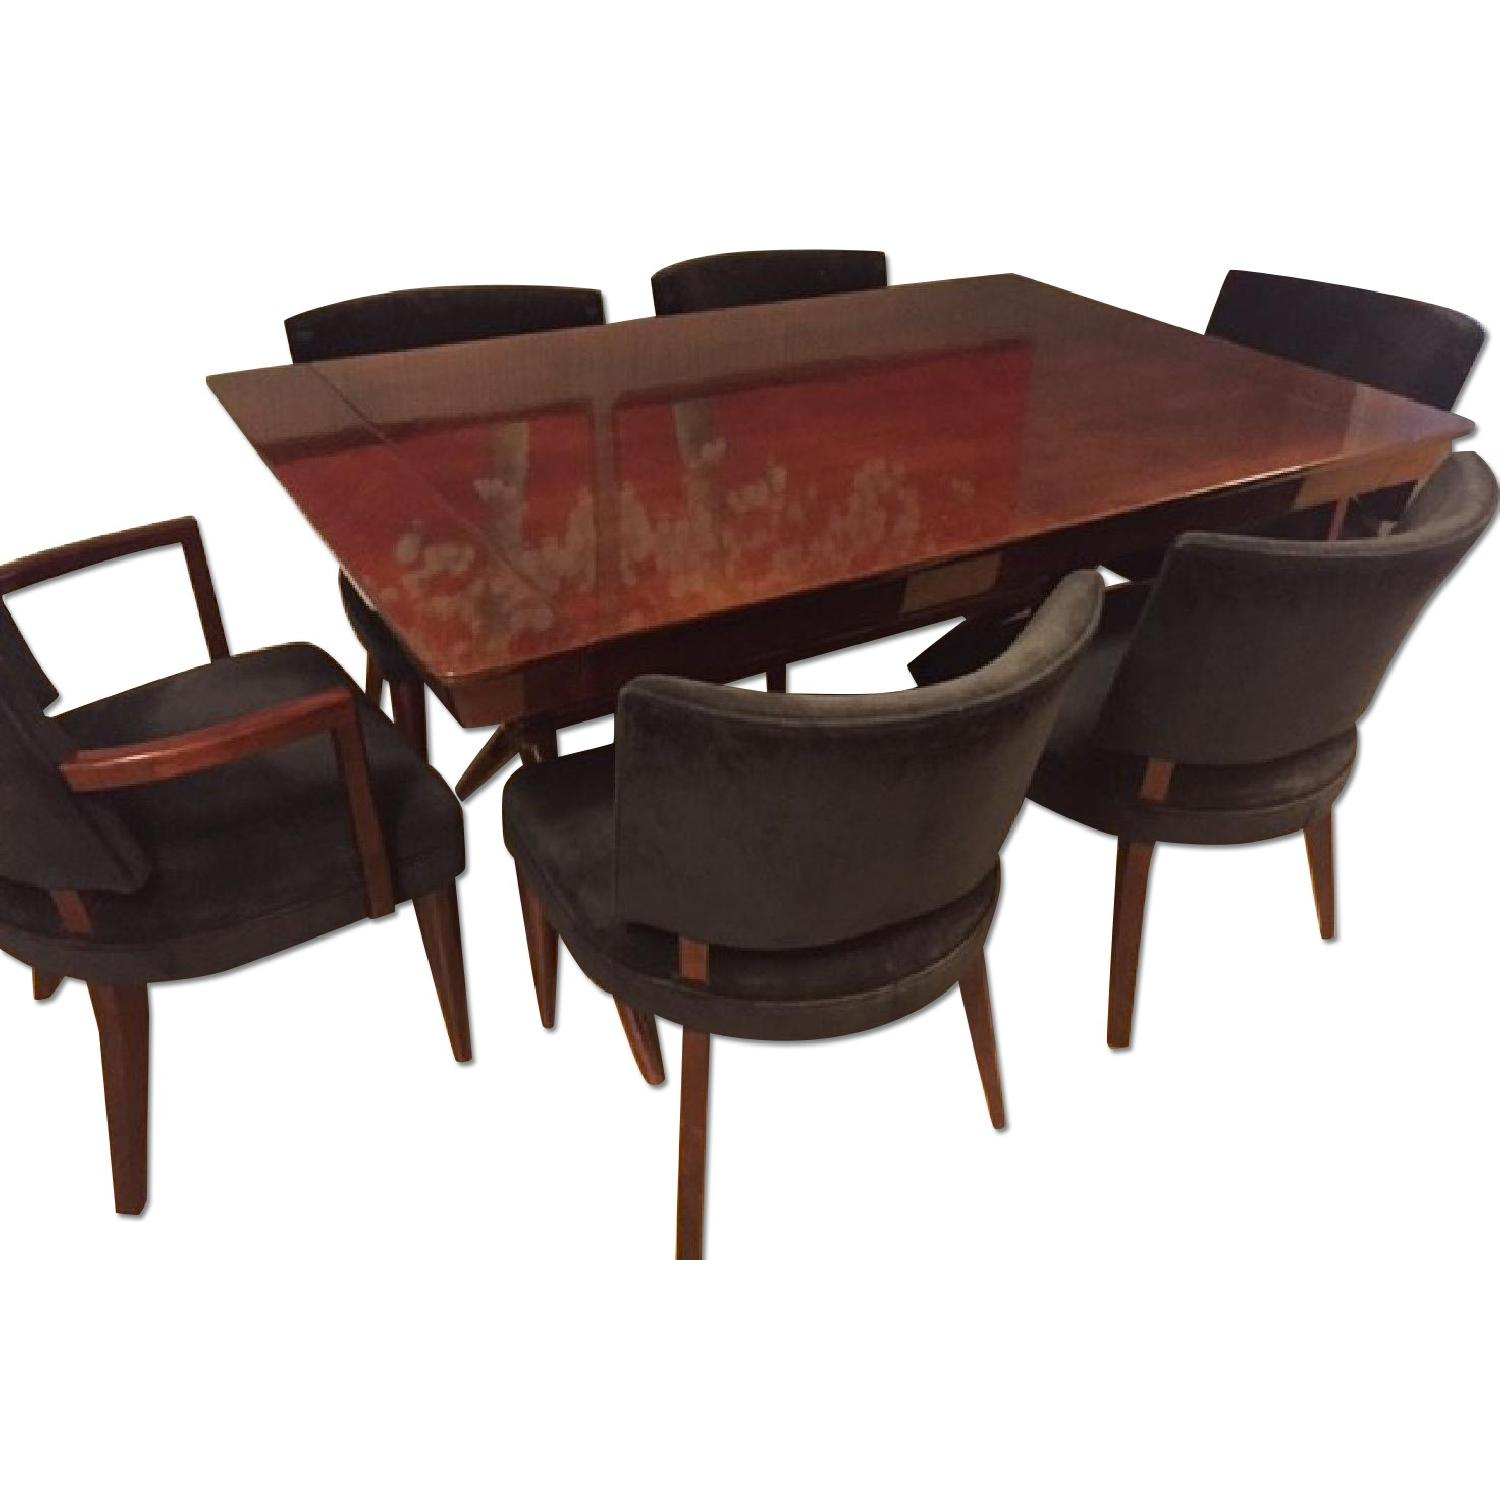 Depression Modern Art Deco Dining Room Table w/ 6 Chairs - image-0